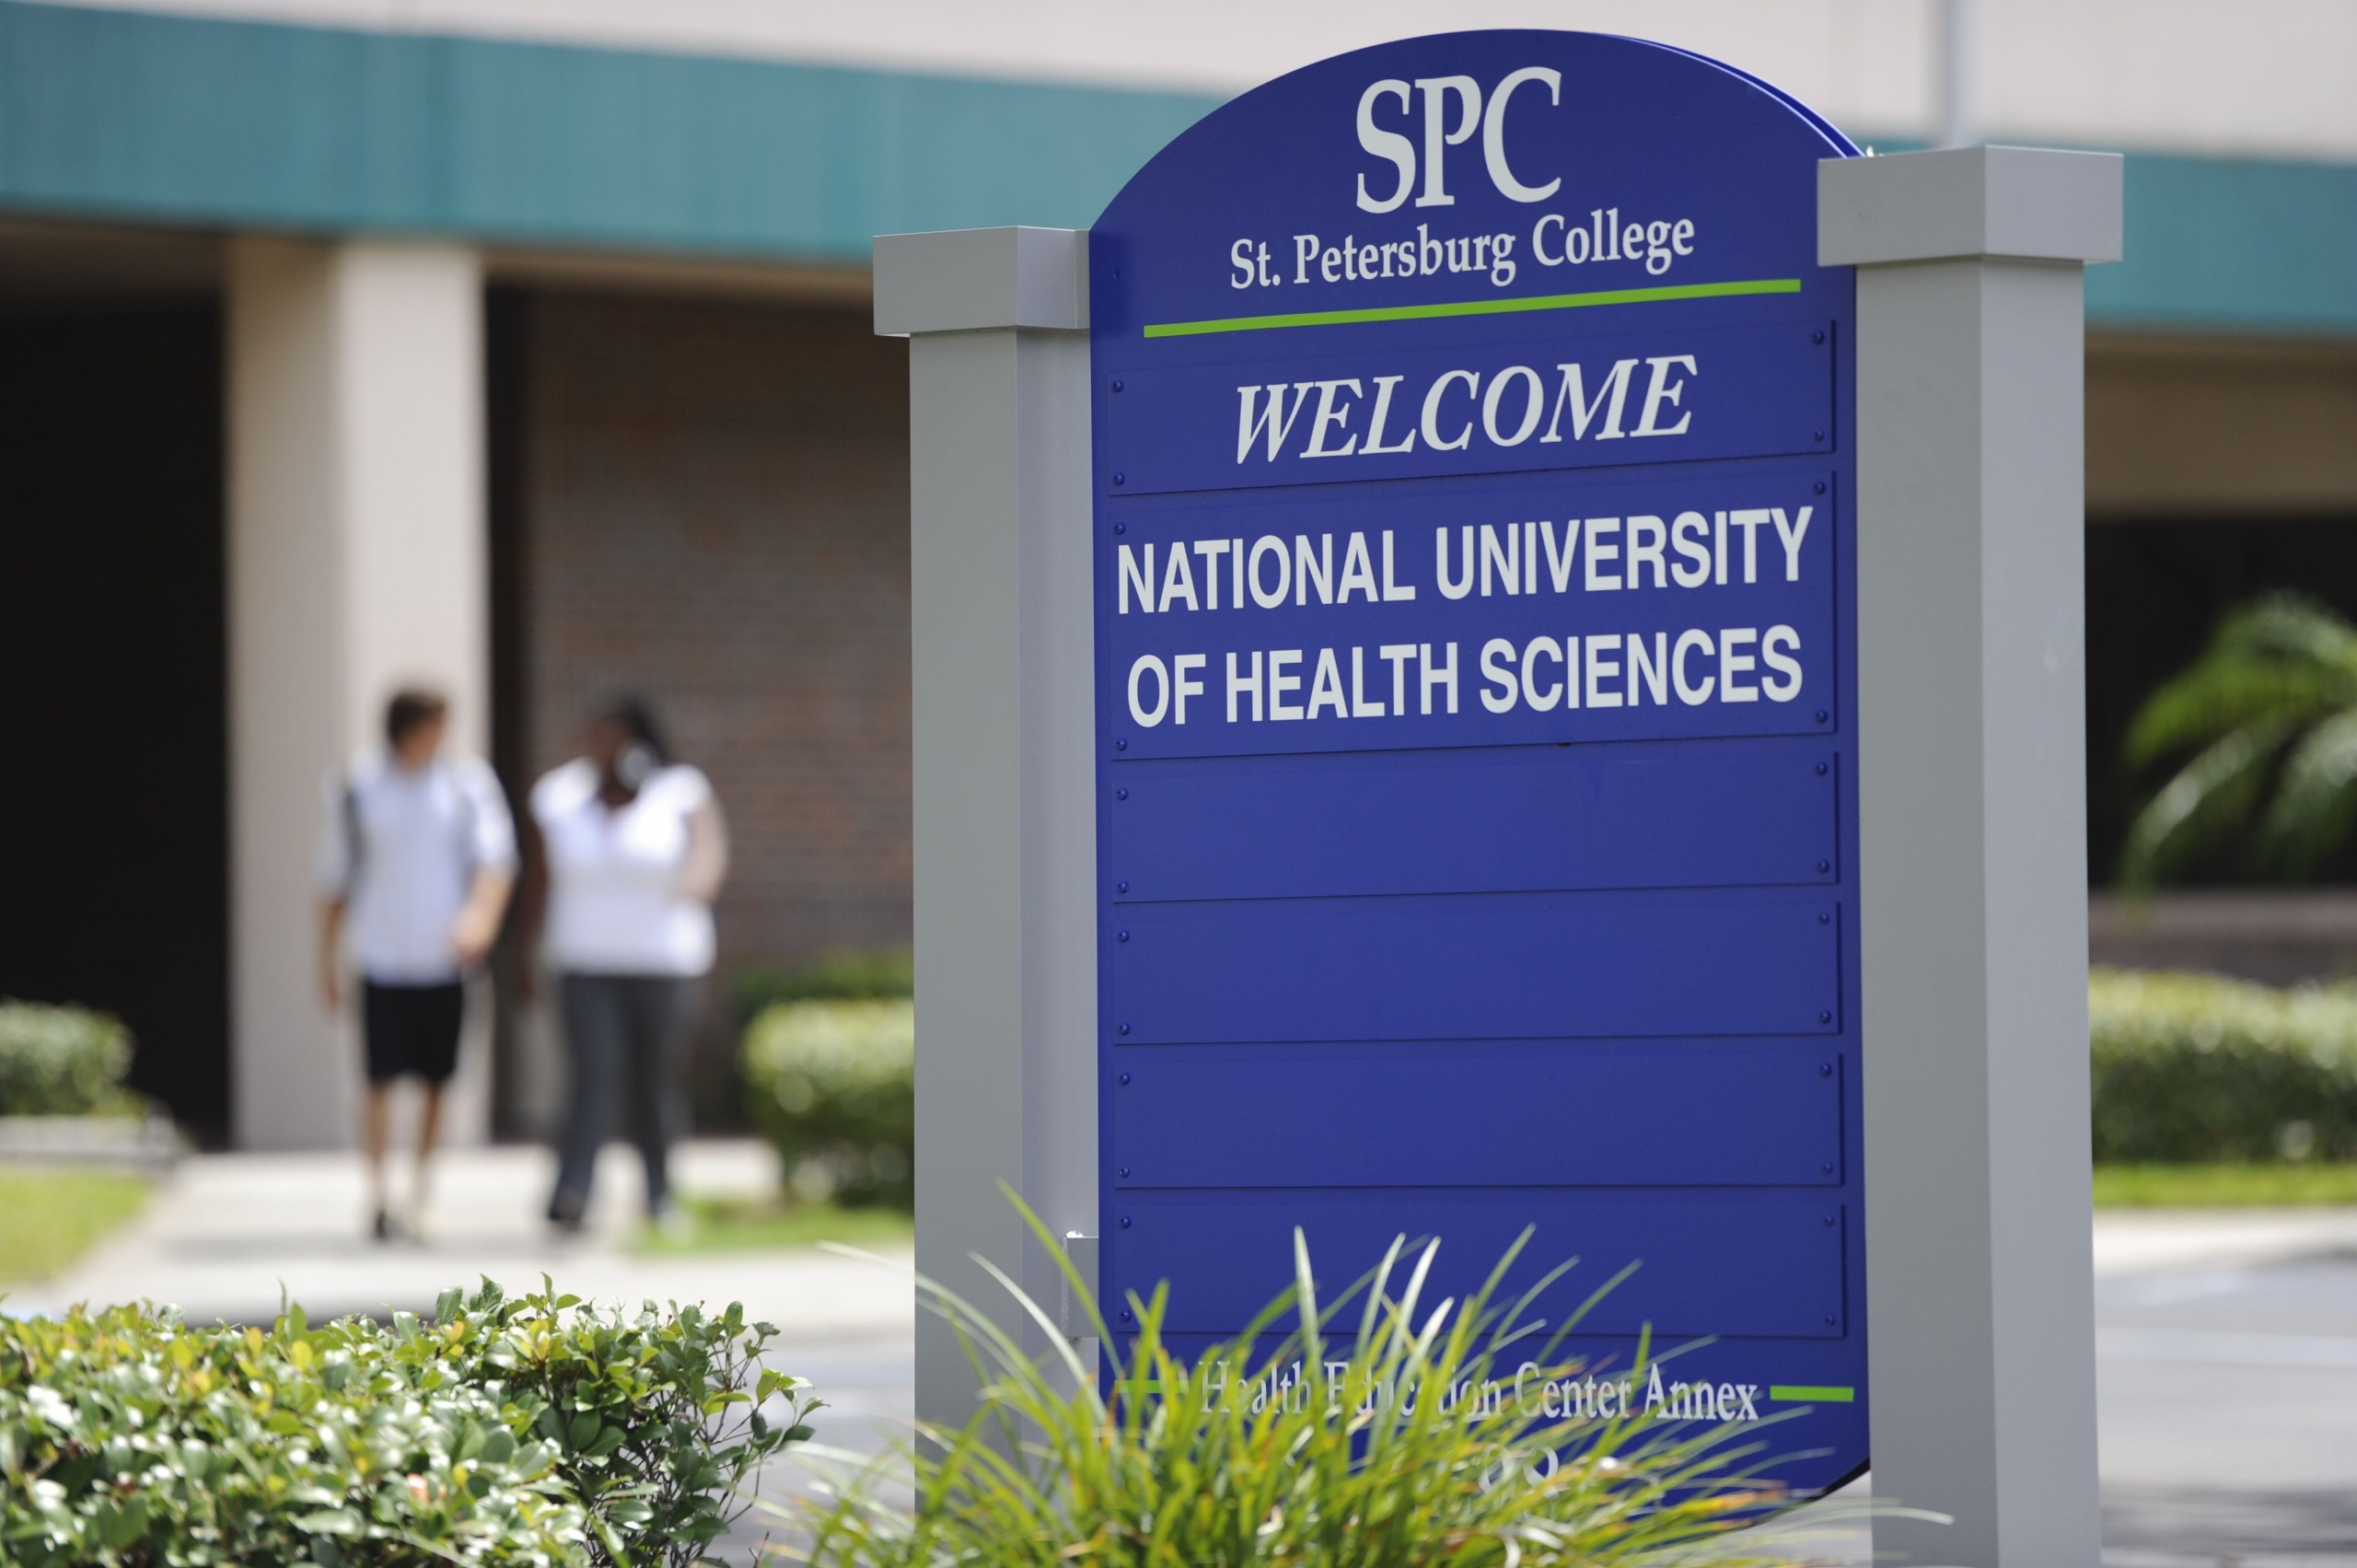 National University of Health Sciences sign